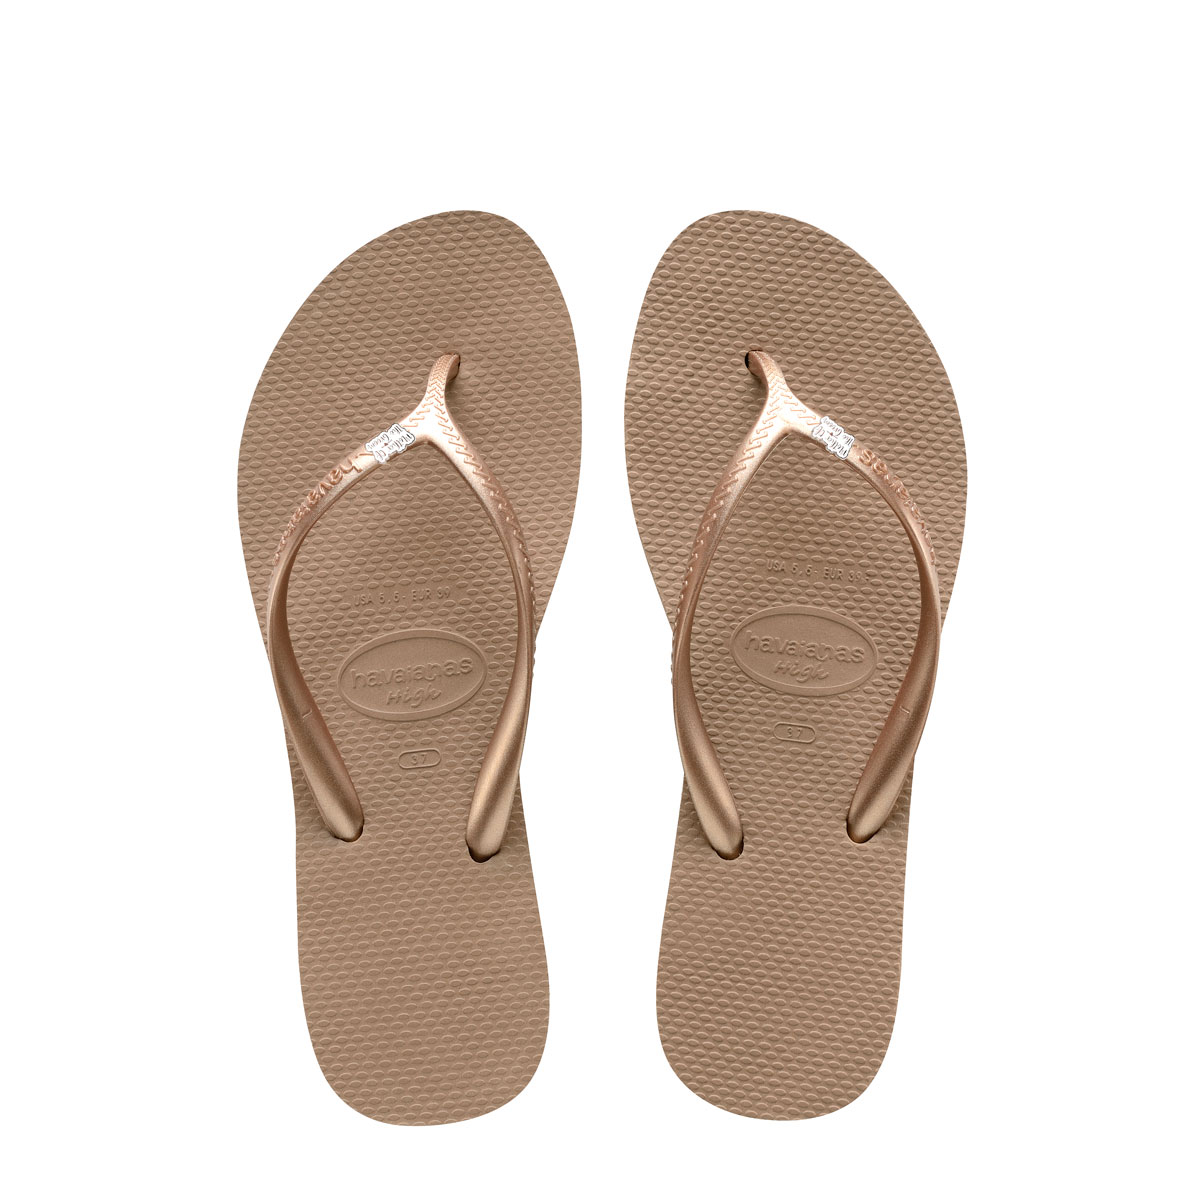 Havaianas Heel Rose Gold Flip-Flops Silver Mother of the Groom